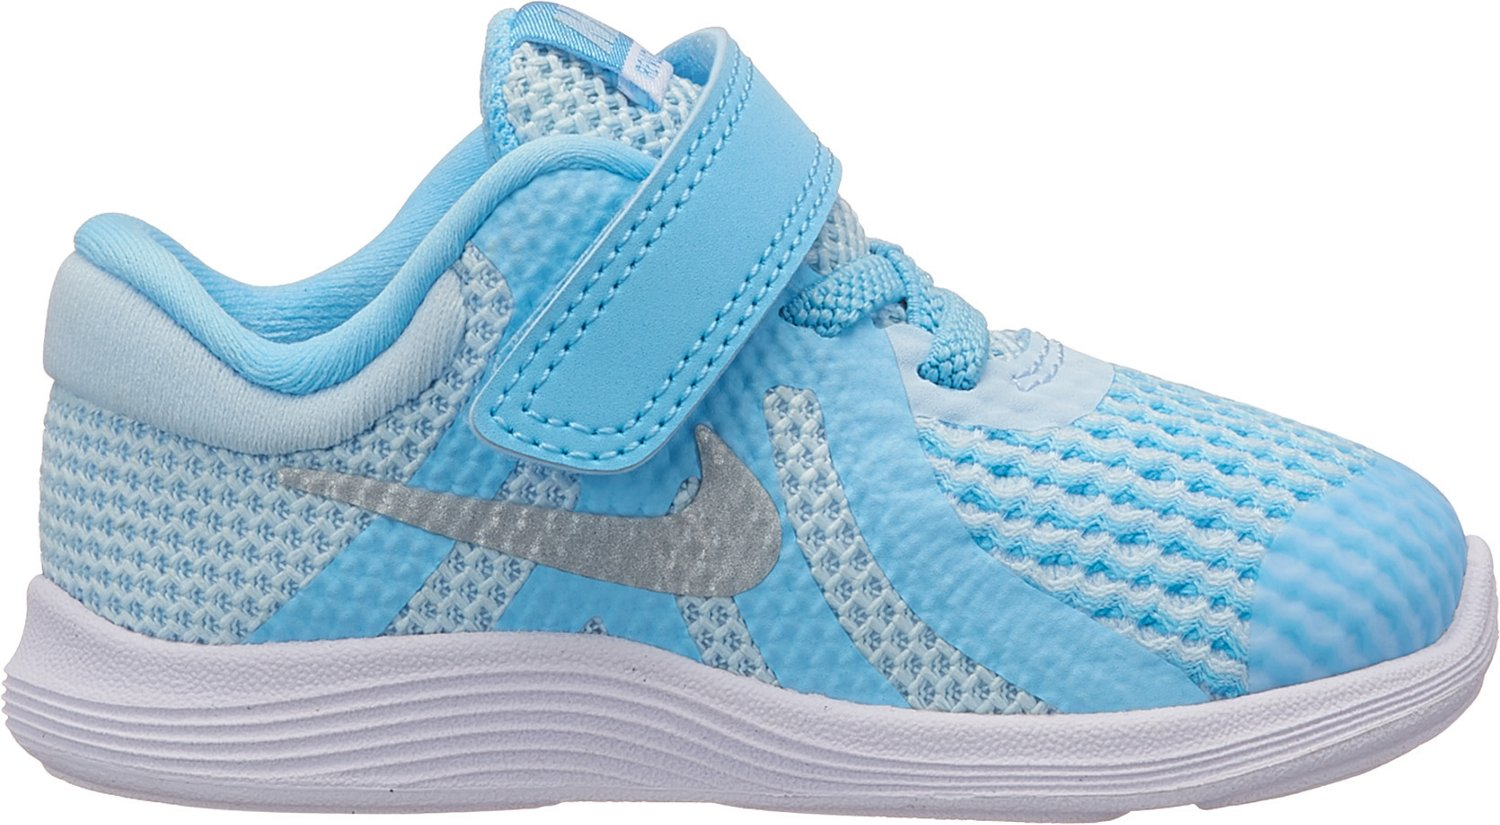 26b563ec05b353 Display product reviews for Nike Toddler Girls  Revolution 4 GS Running  Shoes